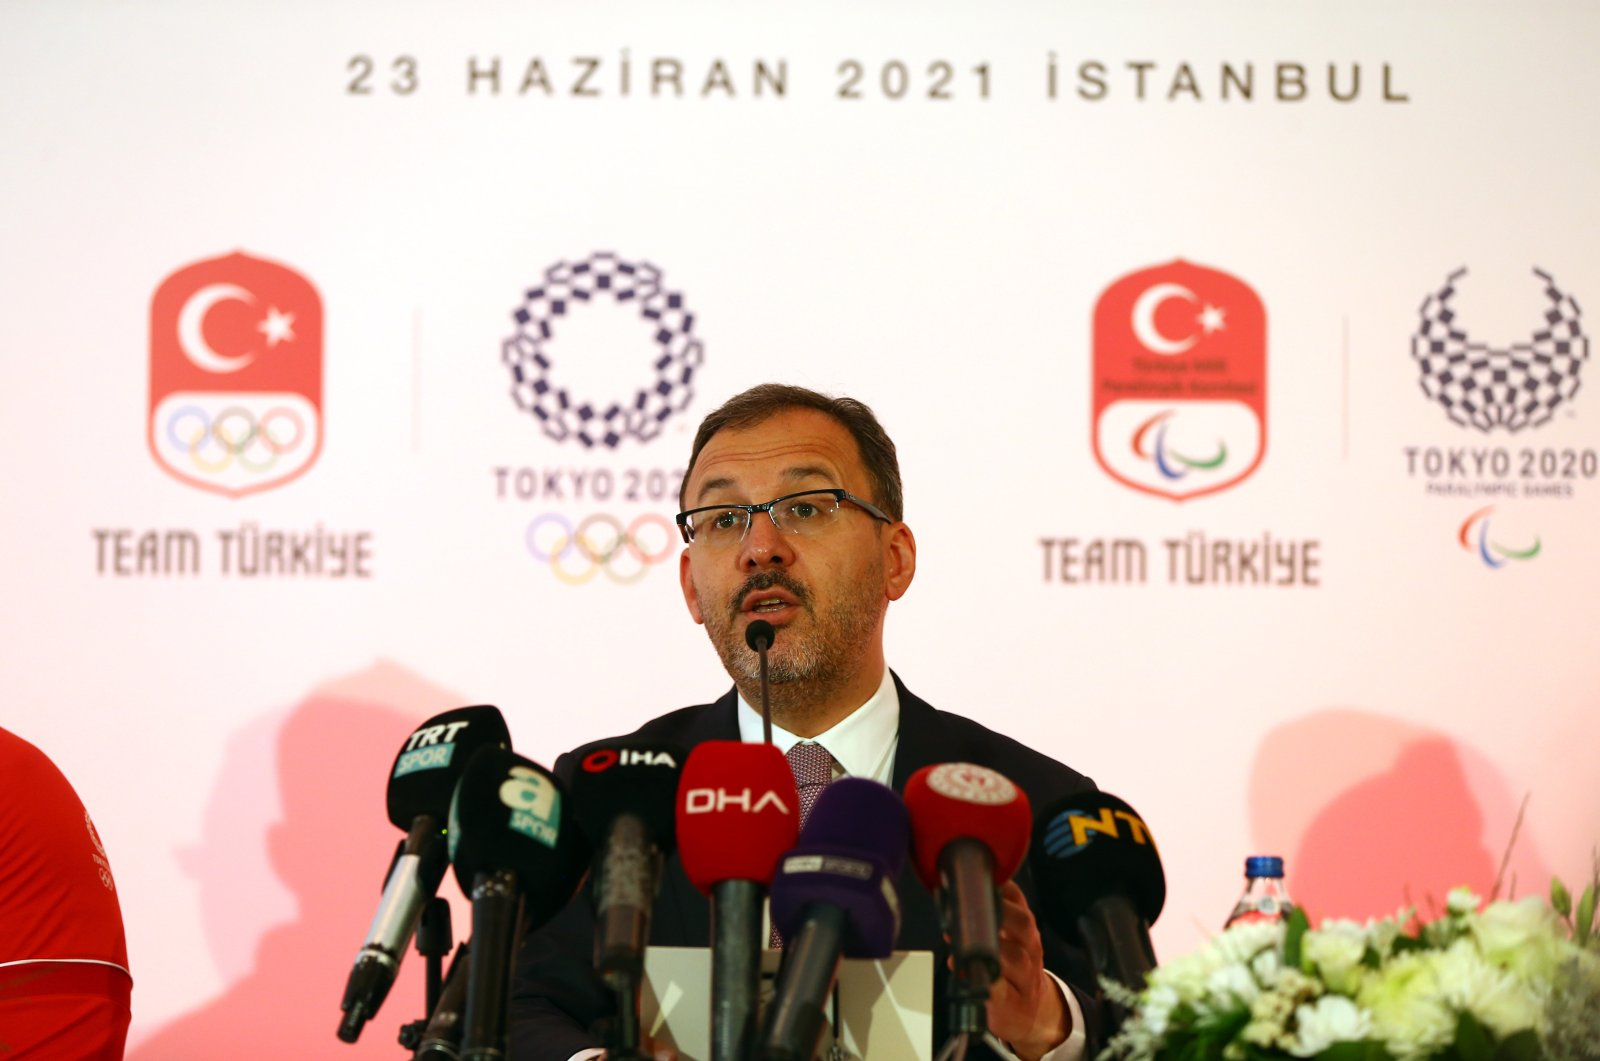 Turkey's Youth and Sports Minister Mehmet MuharremKasapoğluspeaks at an event for the Tokyo Olympics in Istanbul, Turkey, on July 23, 2021. (Sabah File Photo)